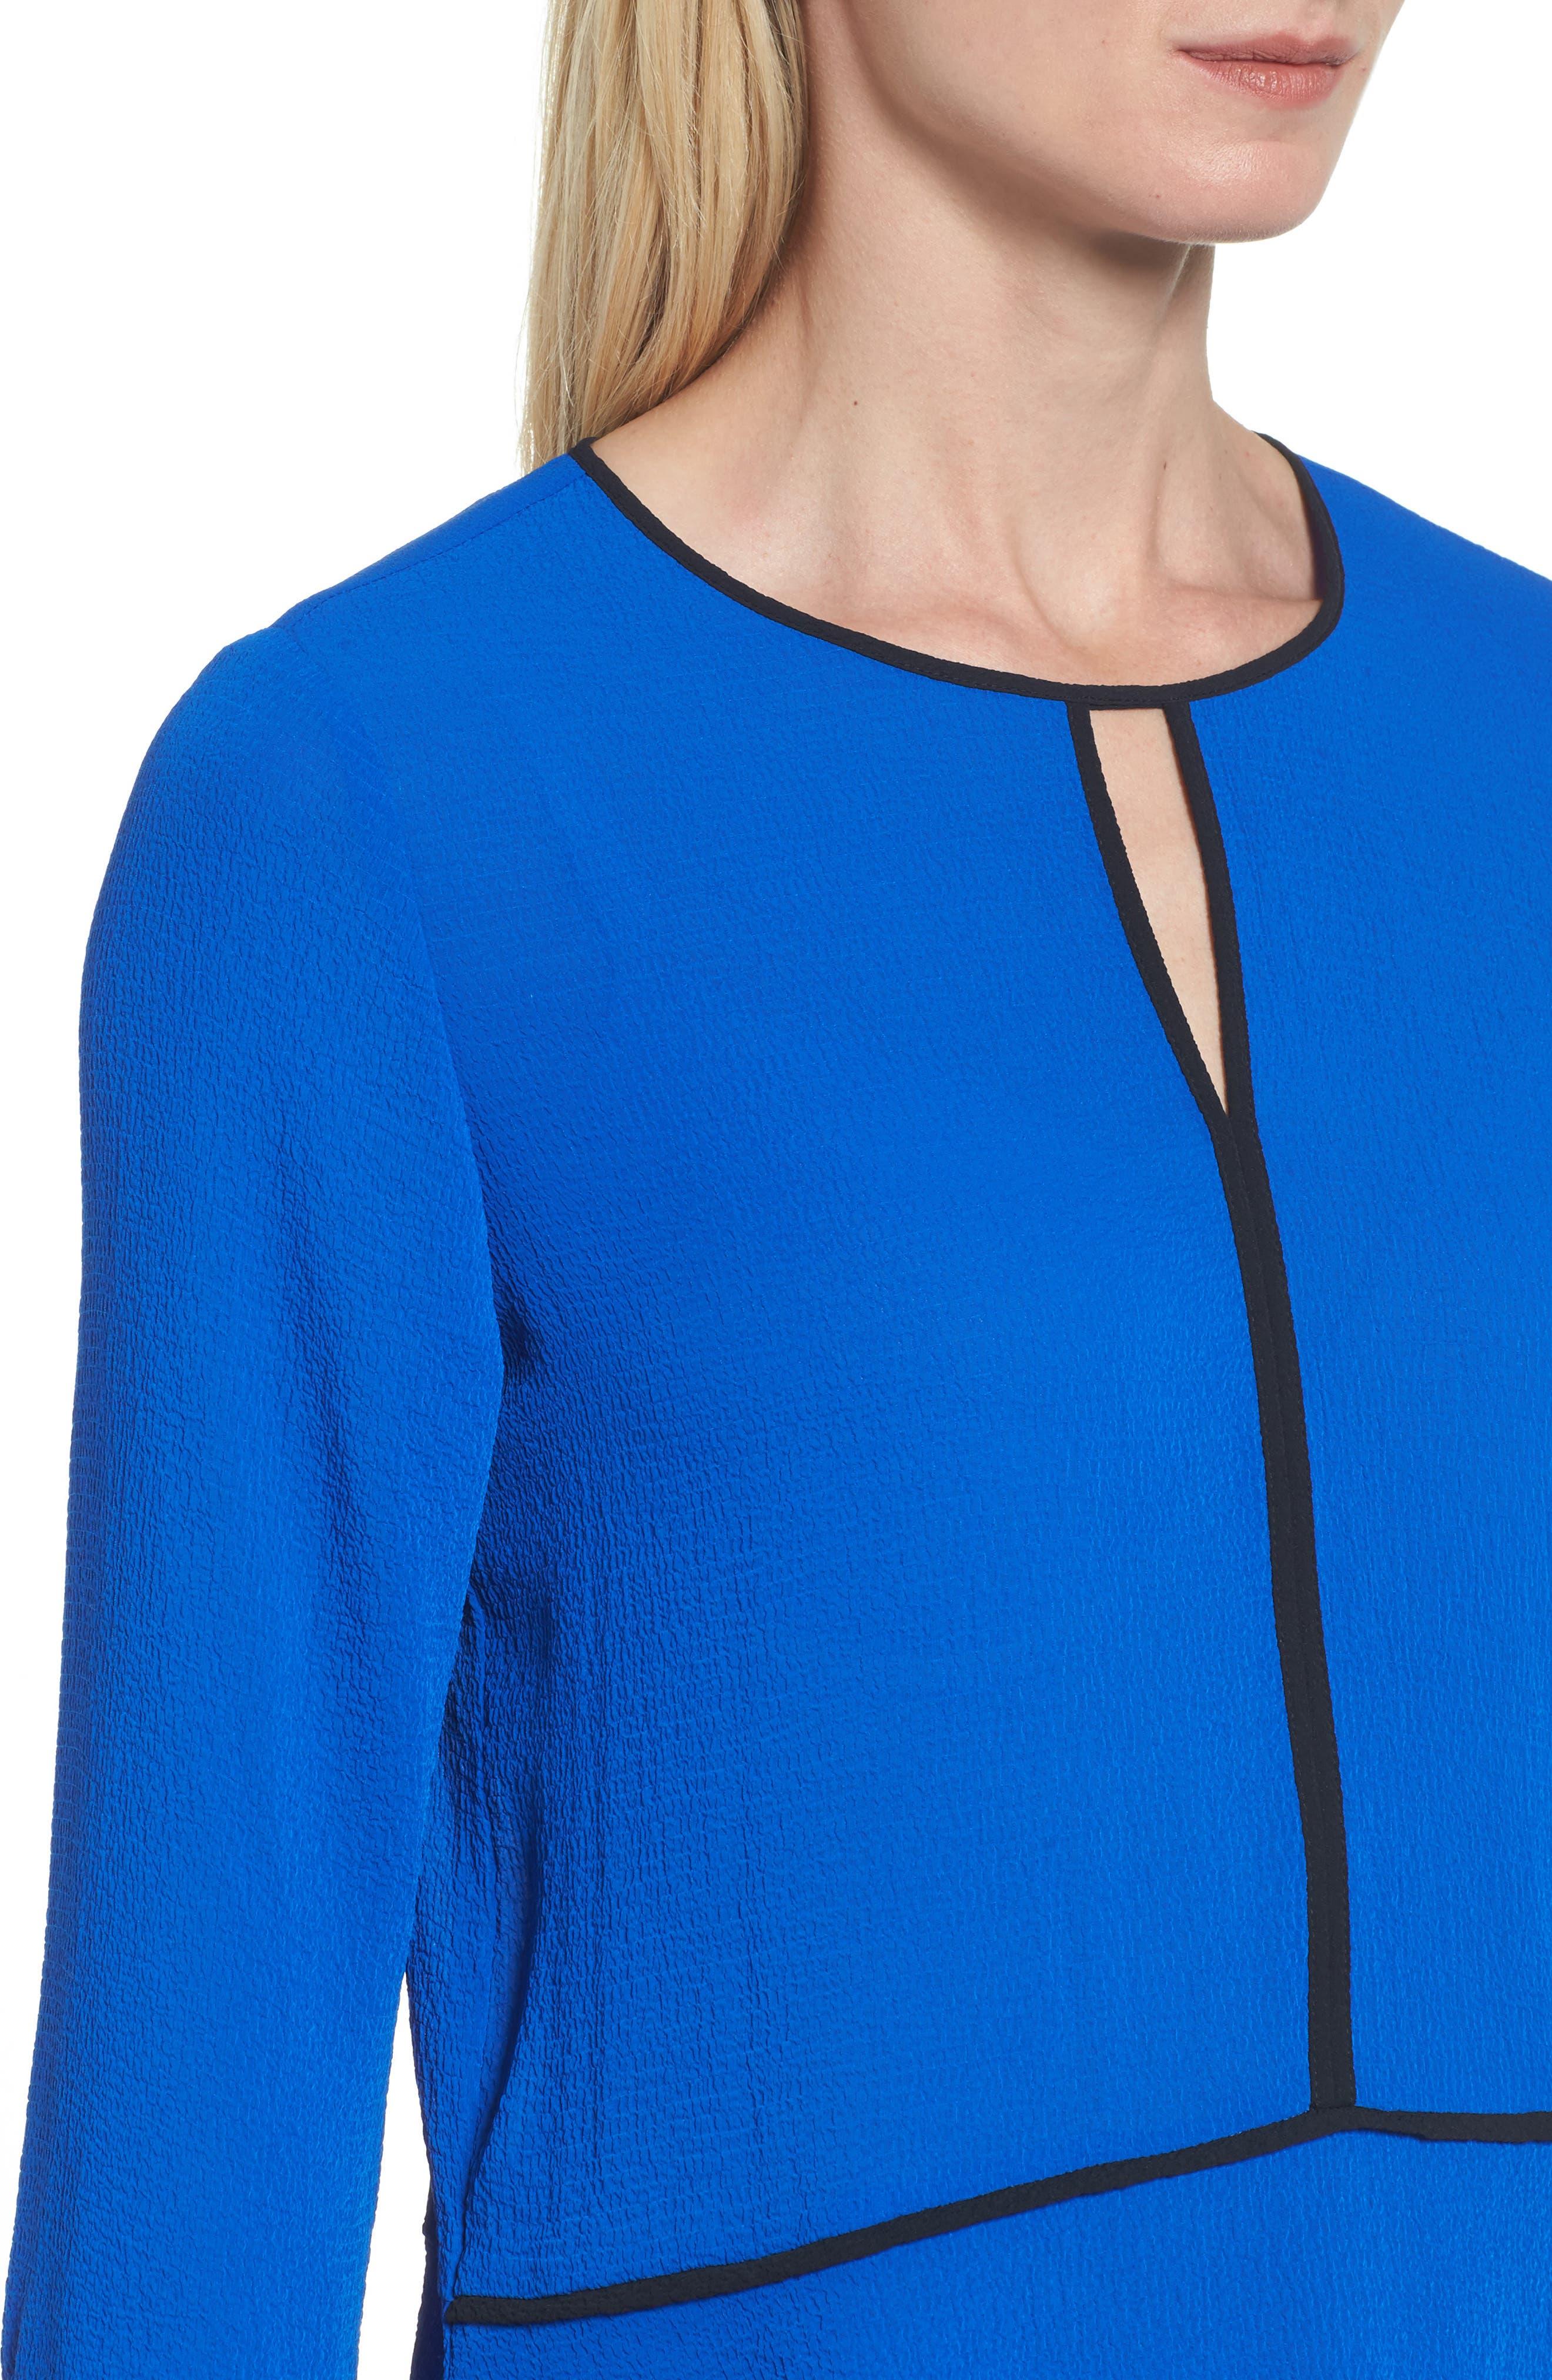 Flare Sleeve Crepe Blouse,                             Alternate thumbnail 4, color,                             421